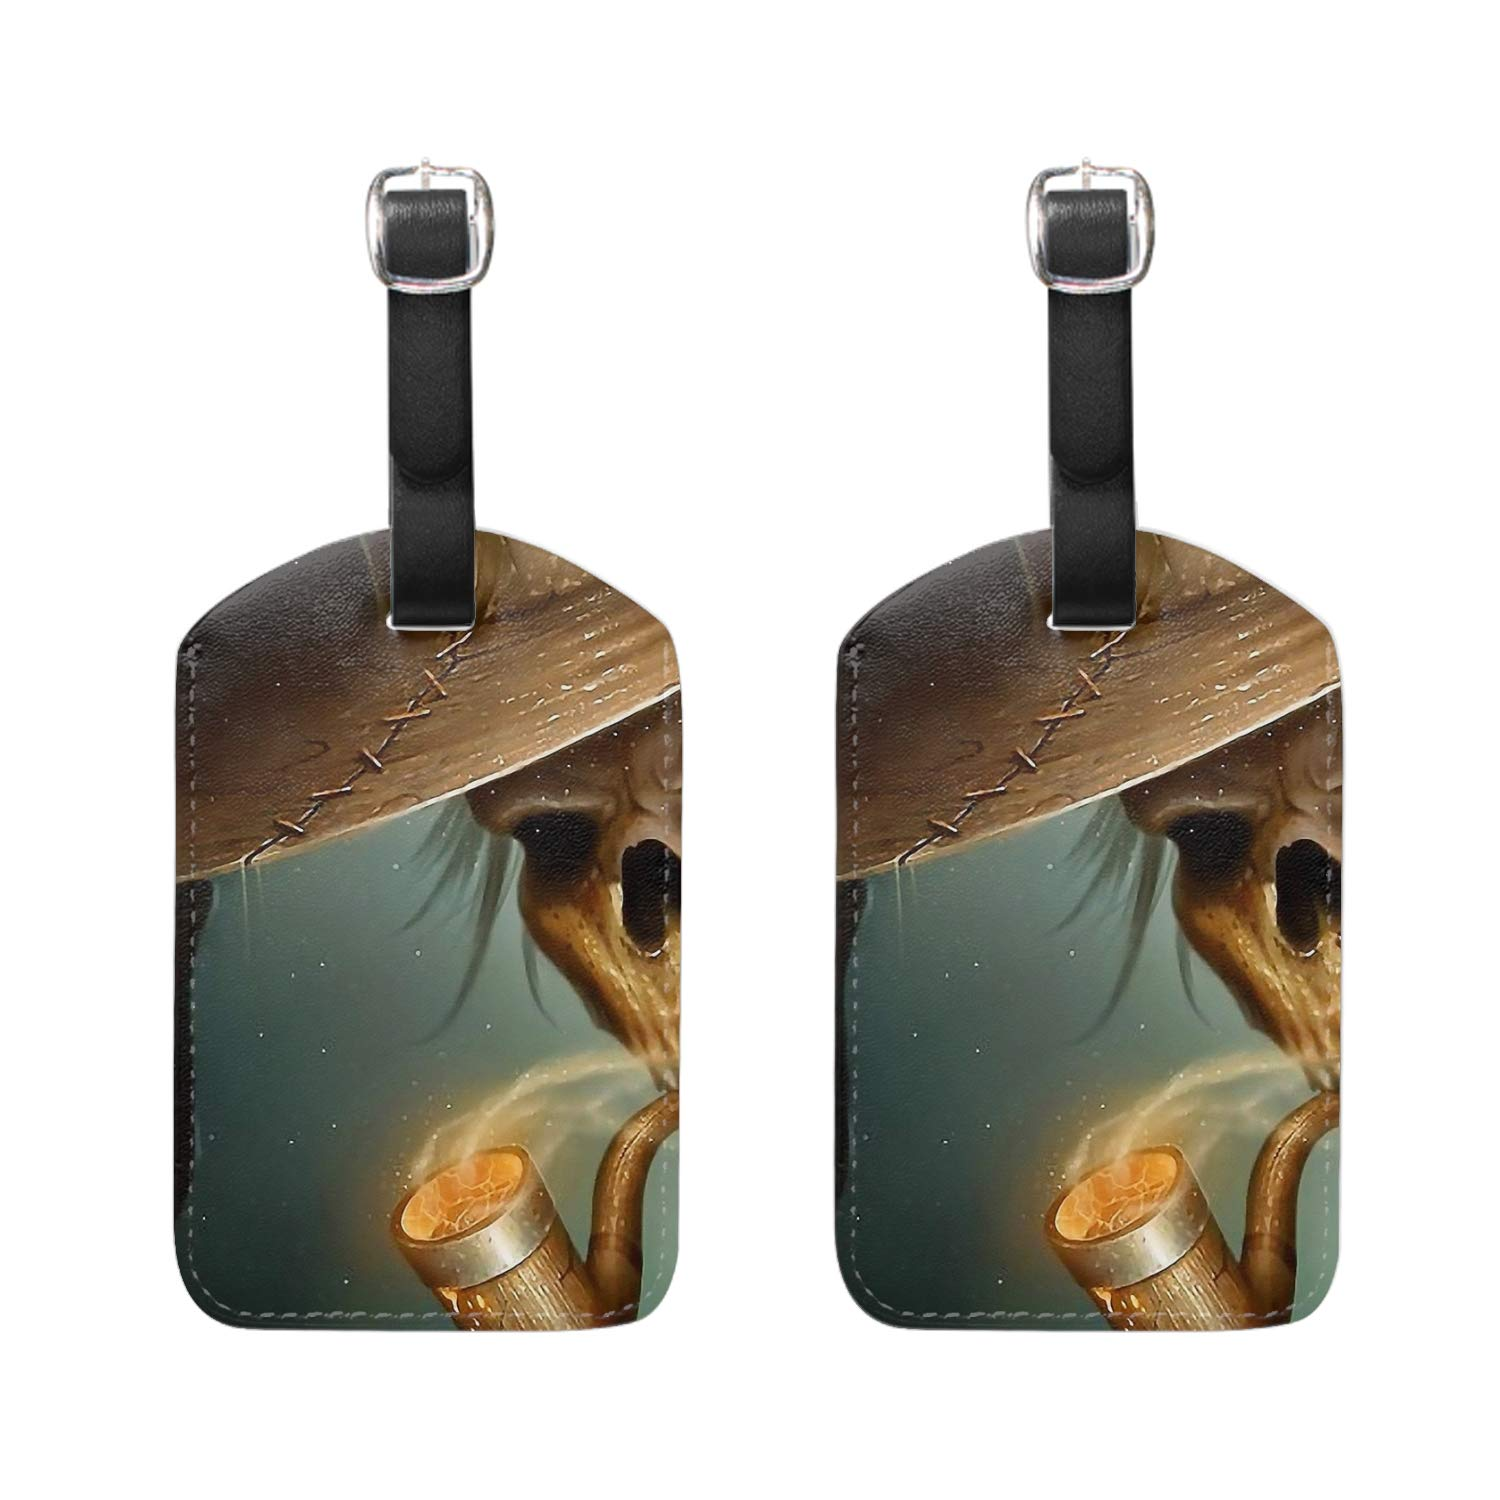 Mercifully Tea Blue Print Luggage Identifiers with Strap Closure